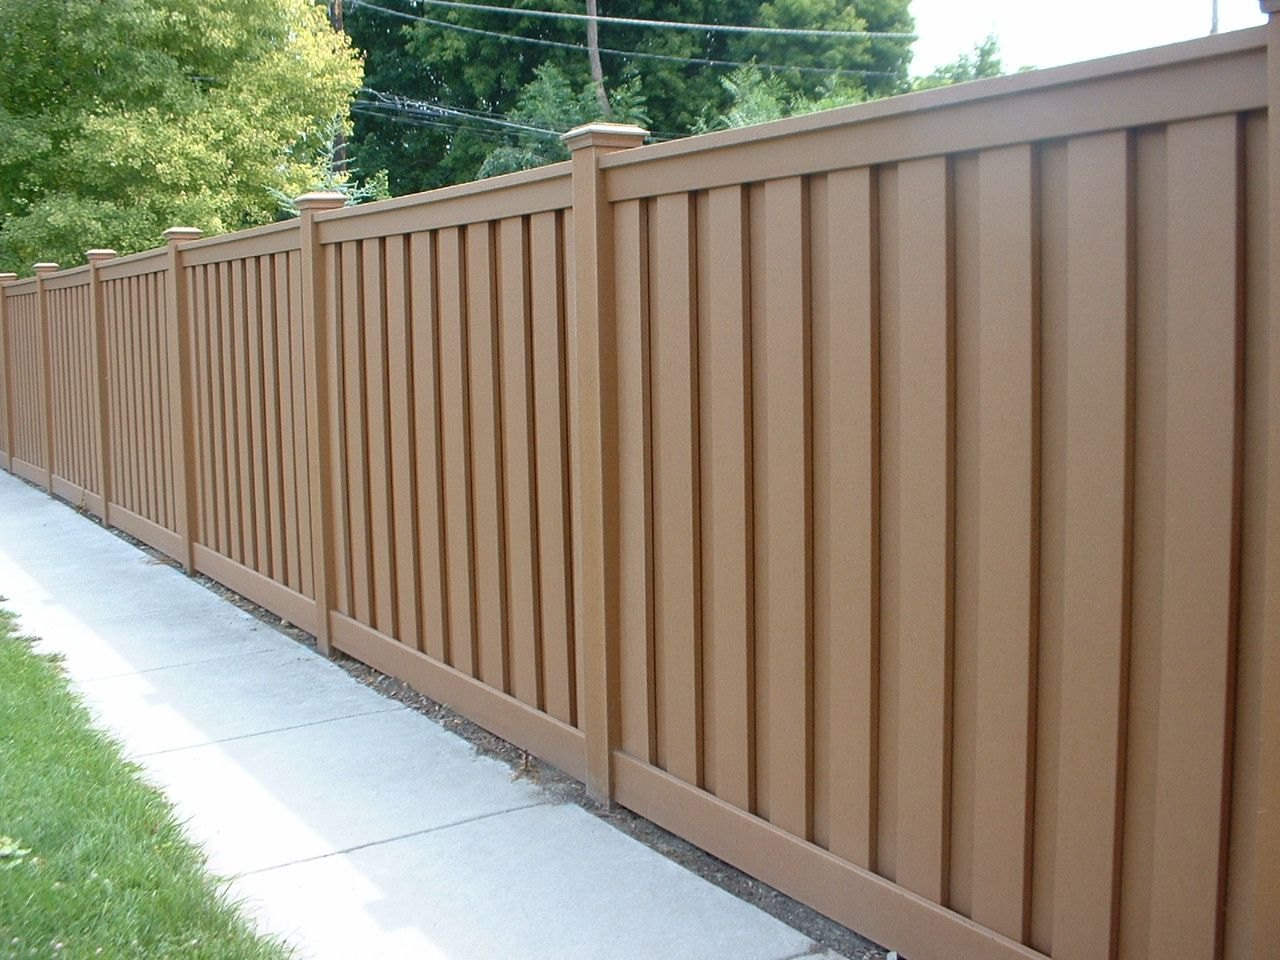 Wpc cheap fence panels wood plastic composite outdoor for Cheap patio privacy ideas